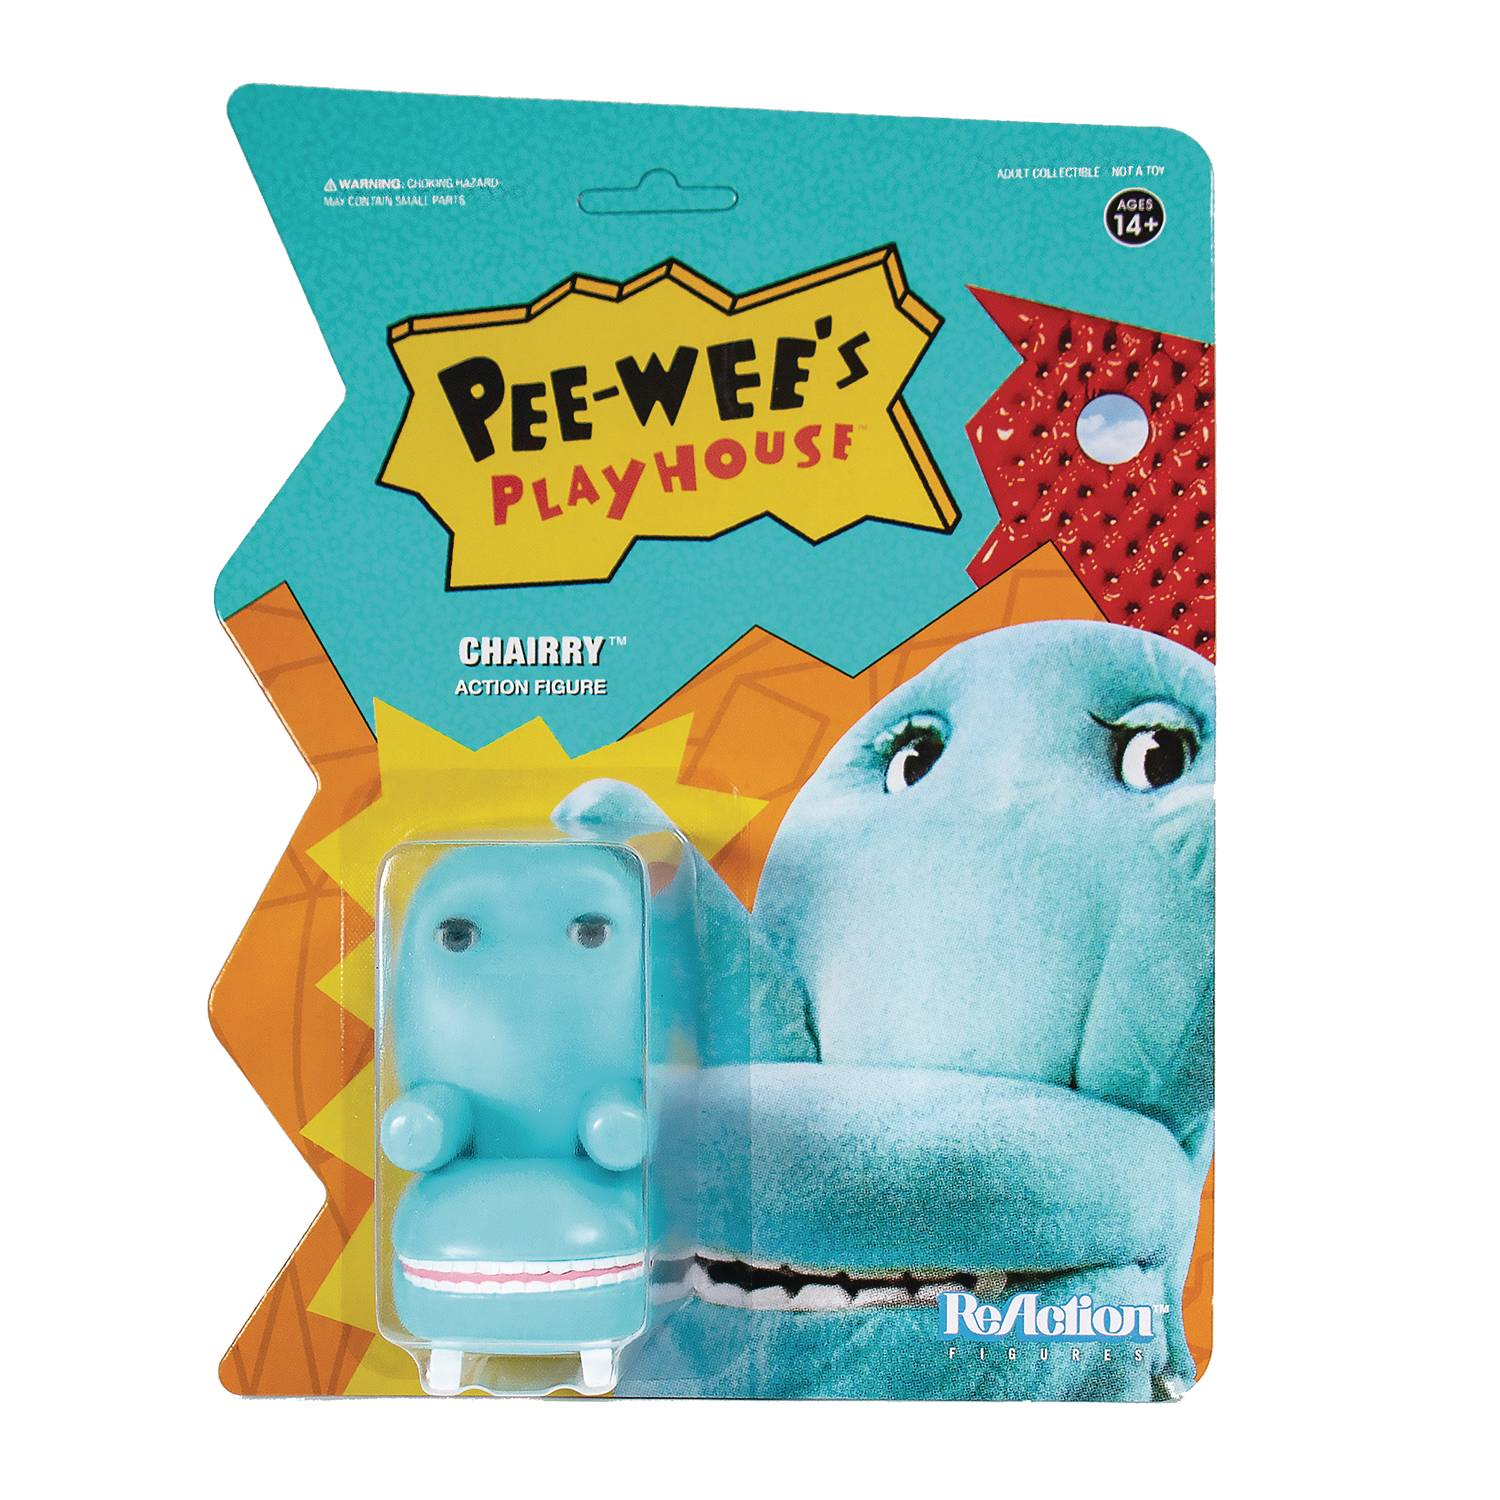 PEE WEES PLAYHOUSE CHAIRRY REACTION FIGURE